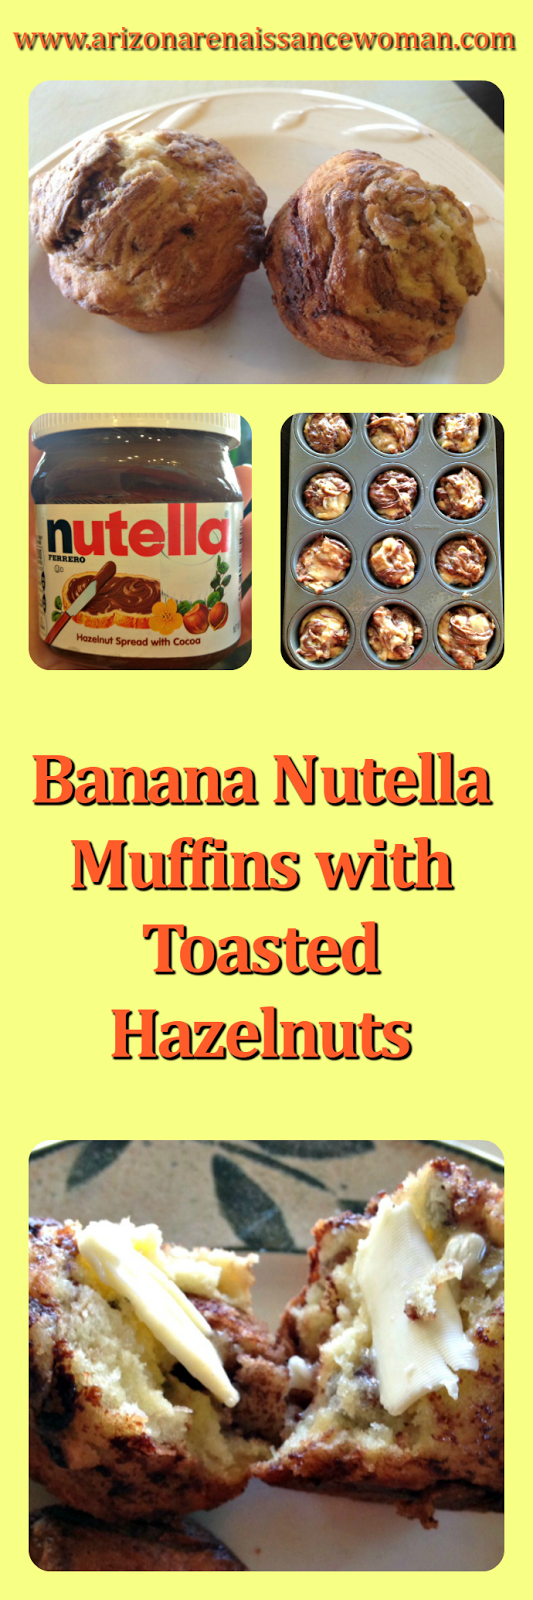 Banana Nutella Muffins with Toasted Hazelnuts Collage